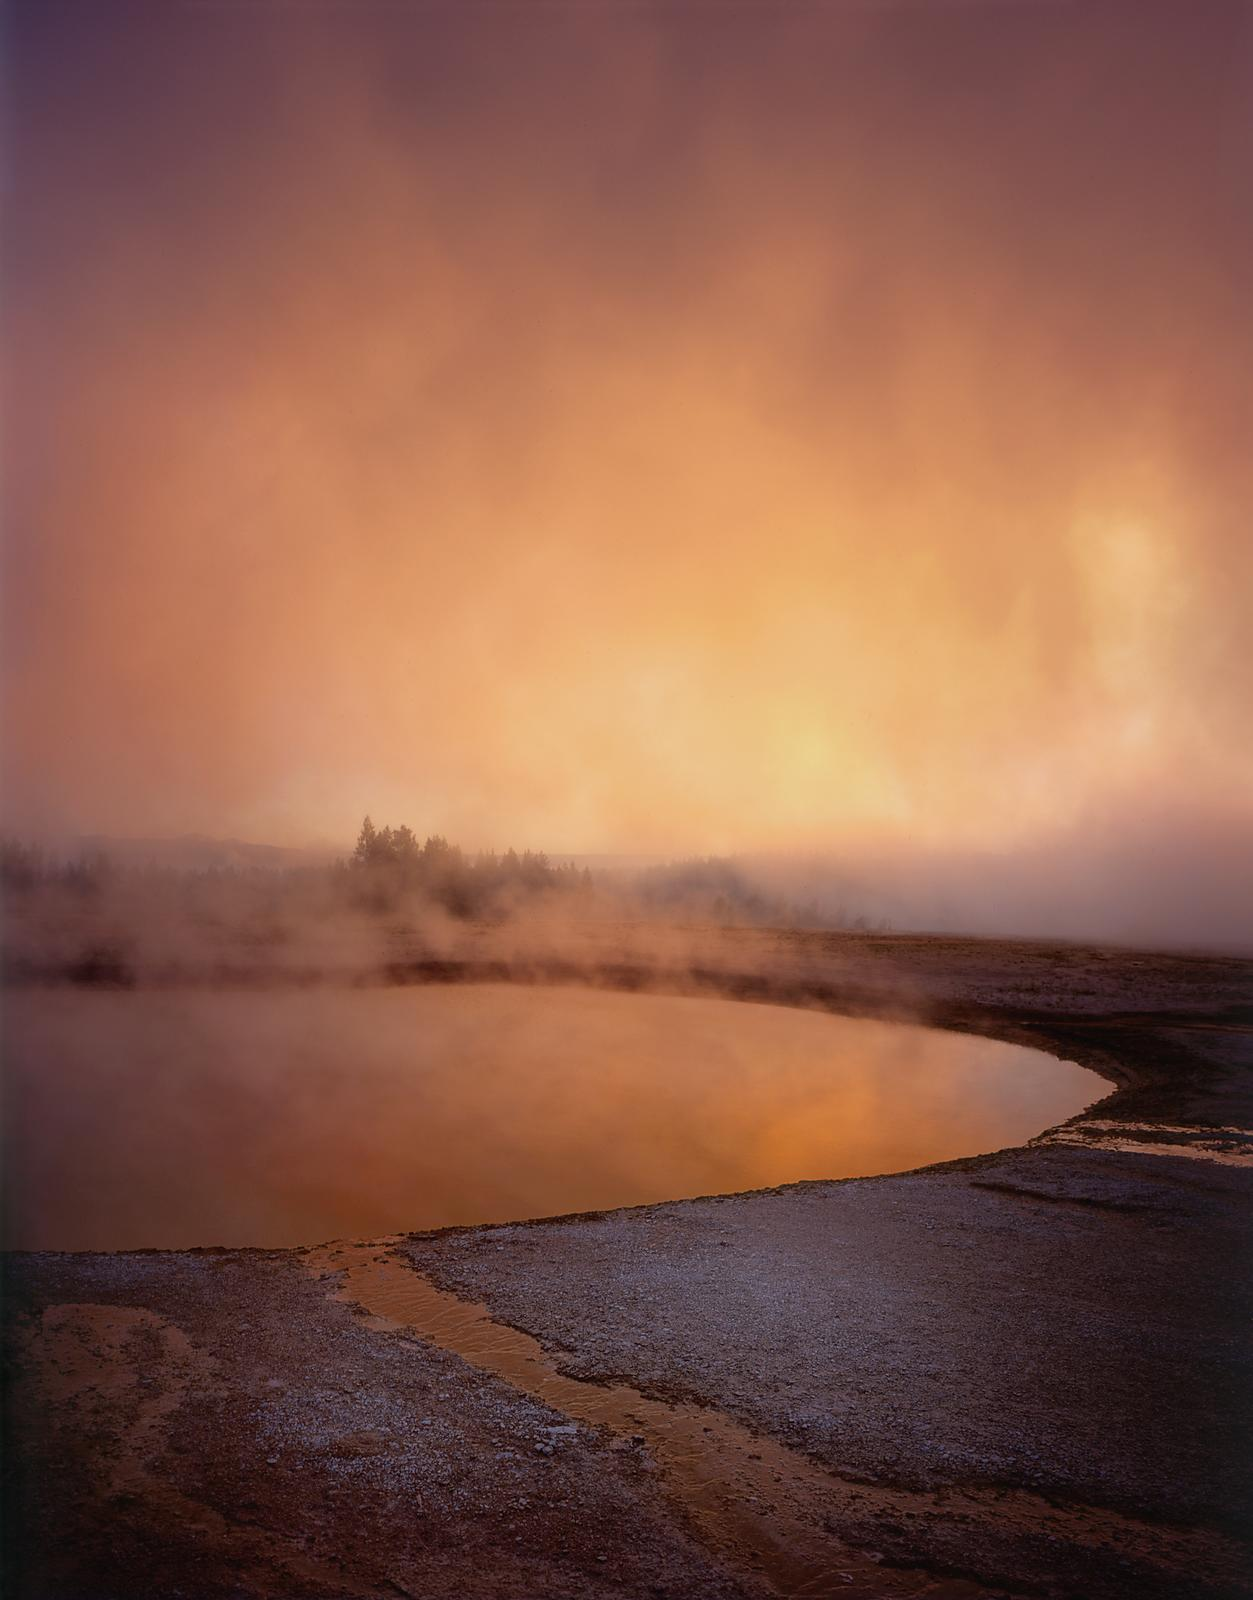 001-Western_Landscapes_D095022_Geyser_at_Sunrise_Preview